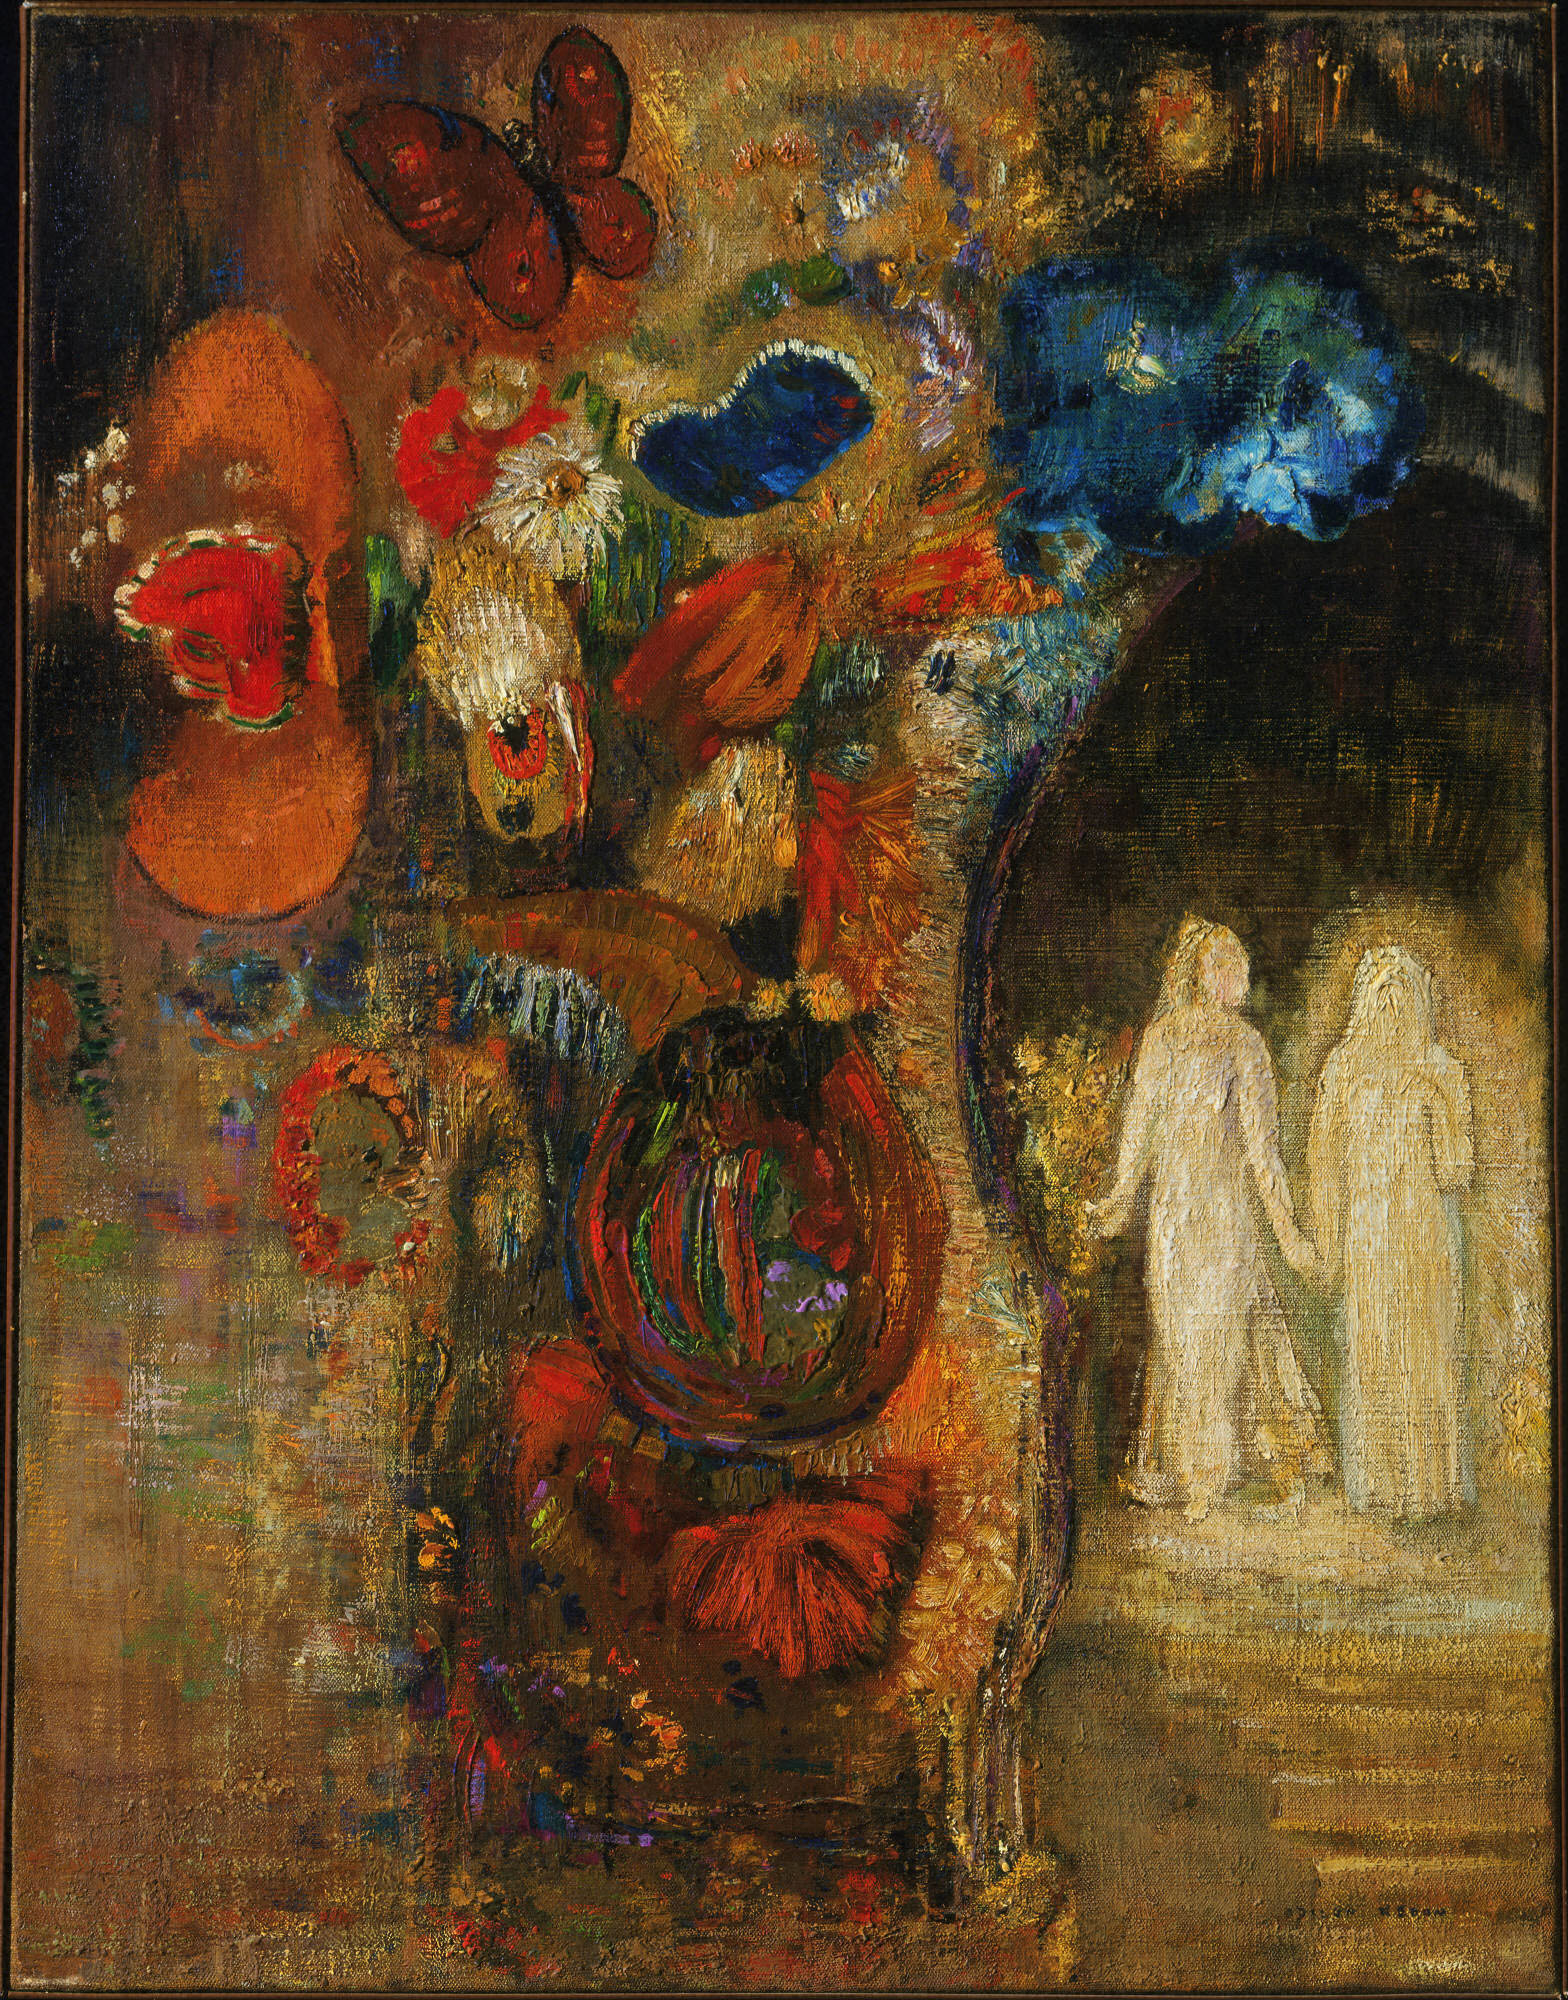 Apparition, by Odilon Redon, circa 1905 - 1910